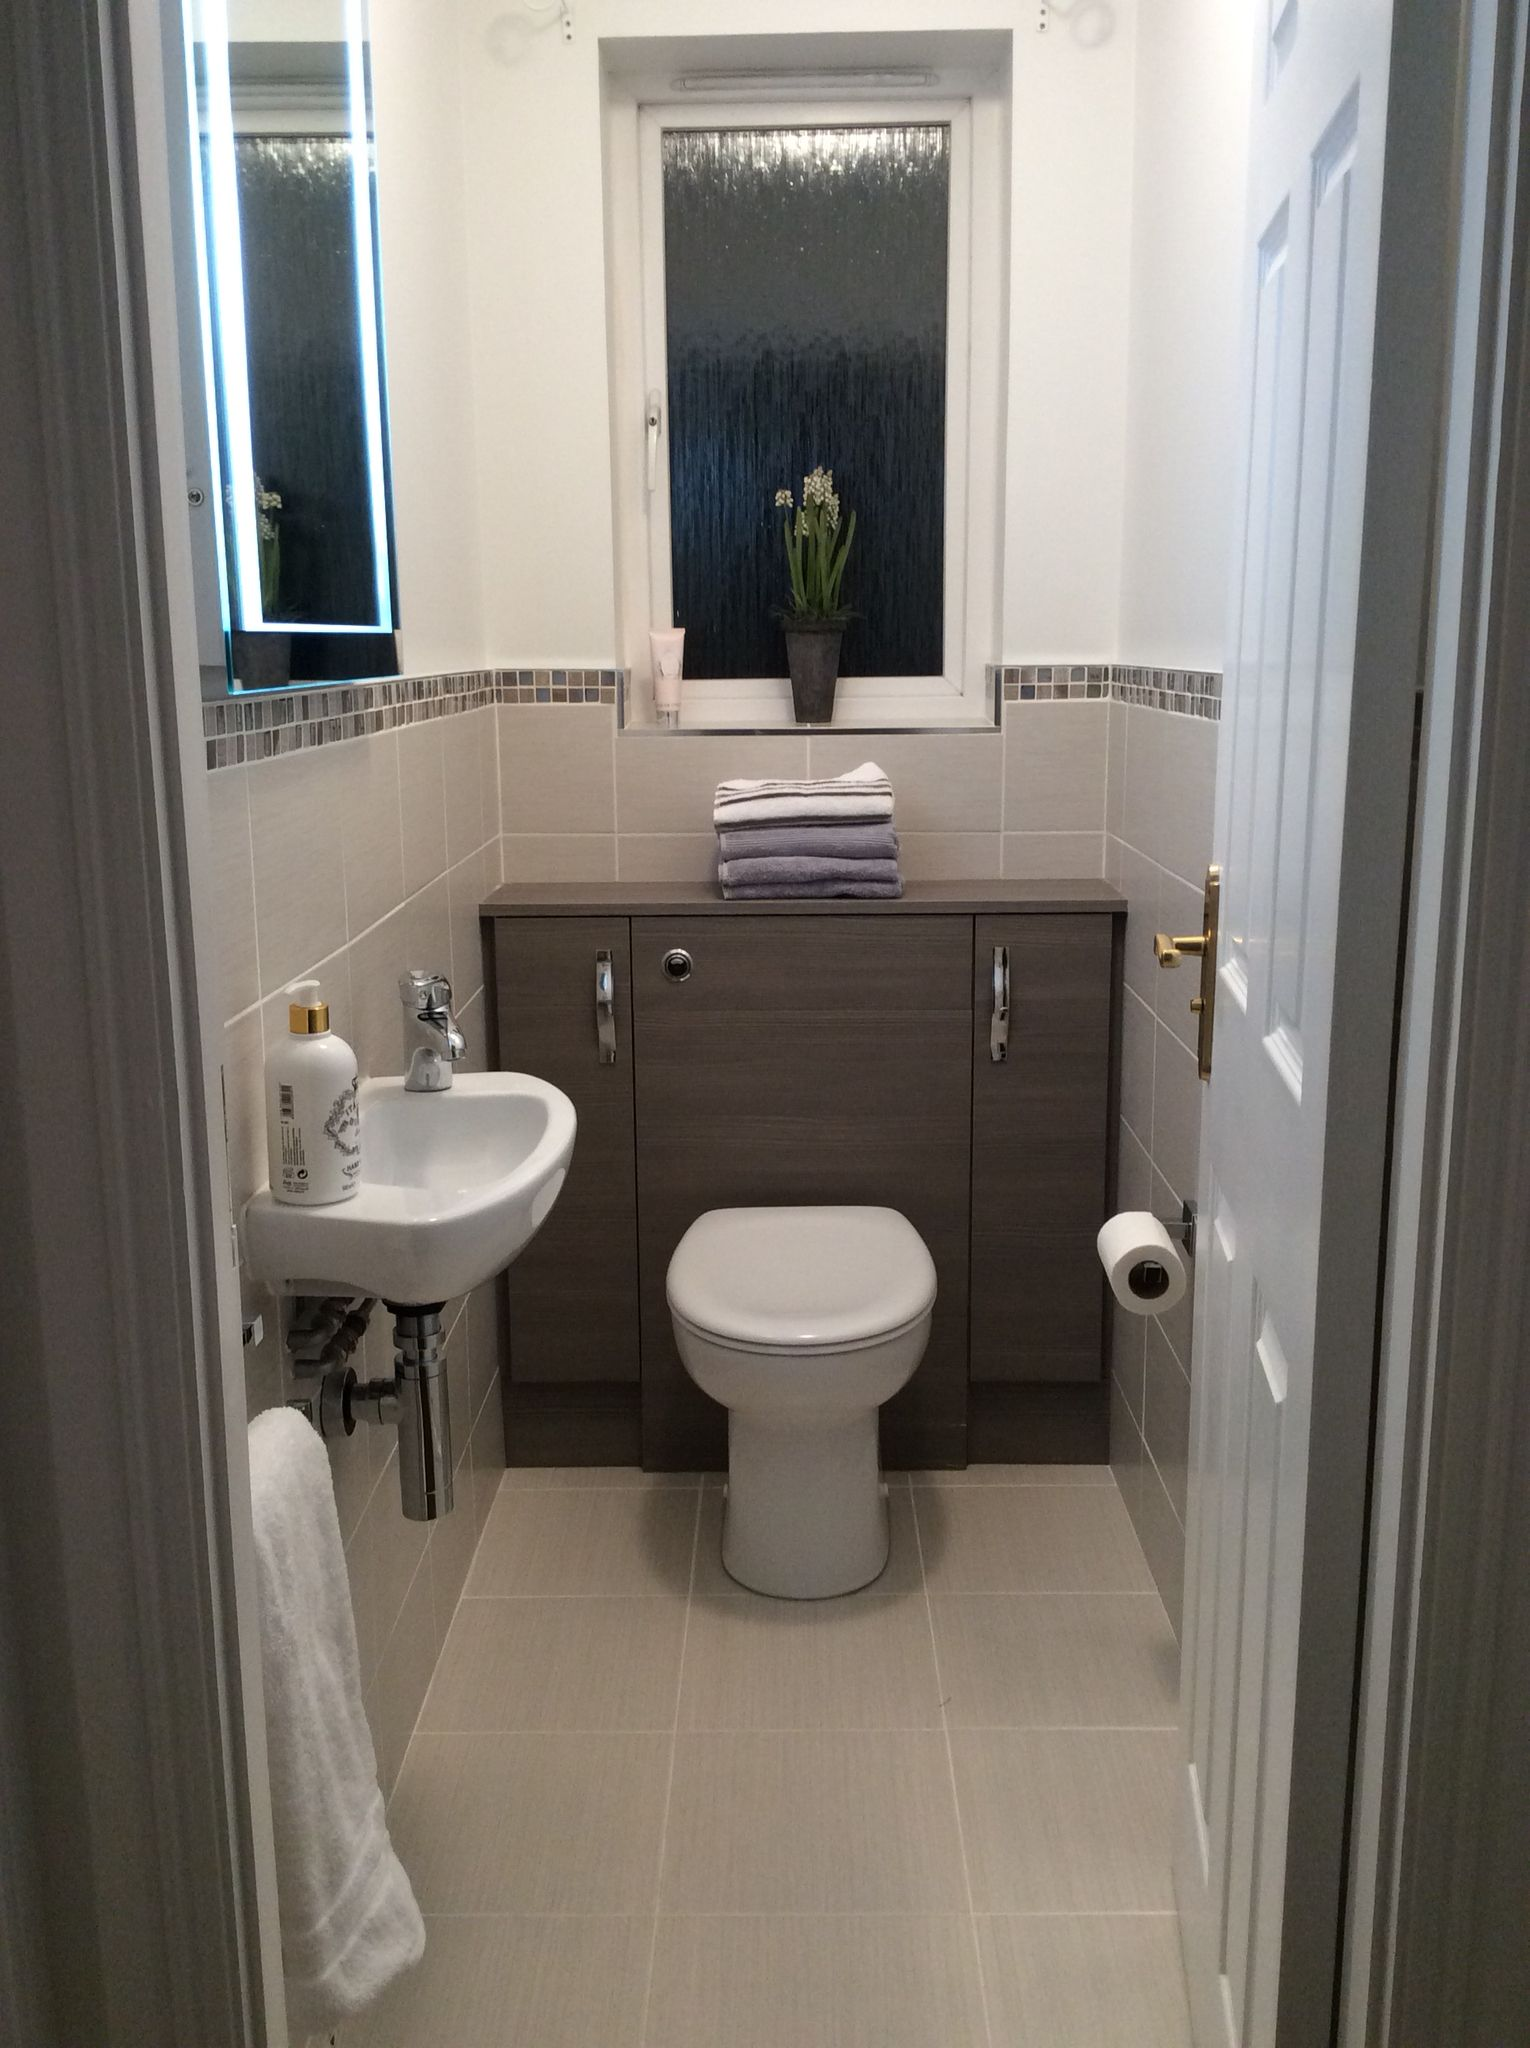 Cloakroom Ideas Images Small Cloakroom Grey Lined Wall And Floor Tiles Edged